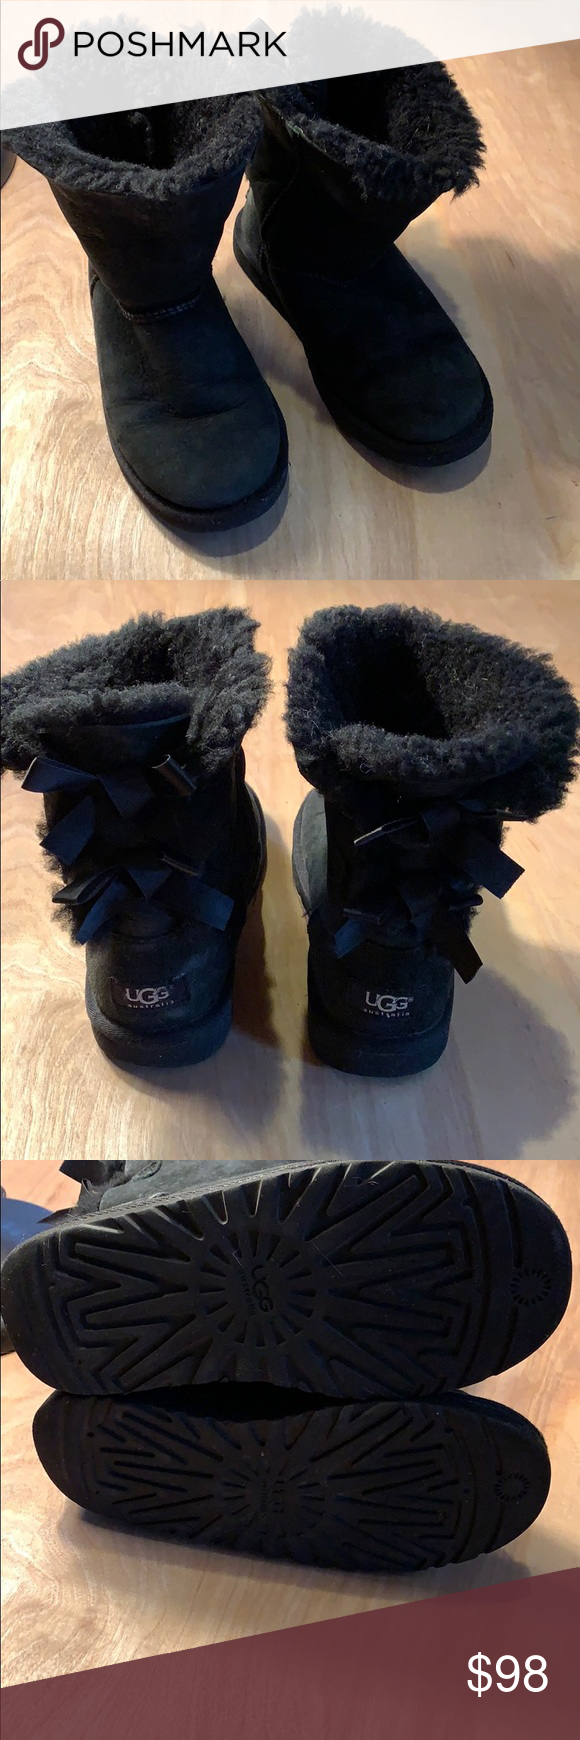 """Girls UGG boots size 3 Baileys black Girls UGG boots size 3 Baileys black new boots, the only thing wearing them is """"dust"""" they have no signs of wear, just tossed in a closet, need some love. See pictures for details. No wear. UGG Shoes Rain & Snow Boots #uggbootsoutfitblackgirl"""